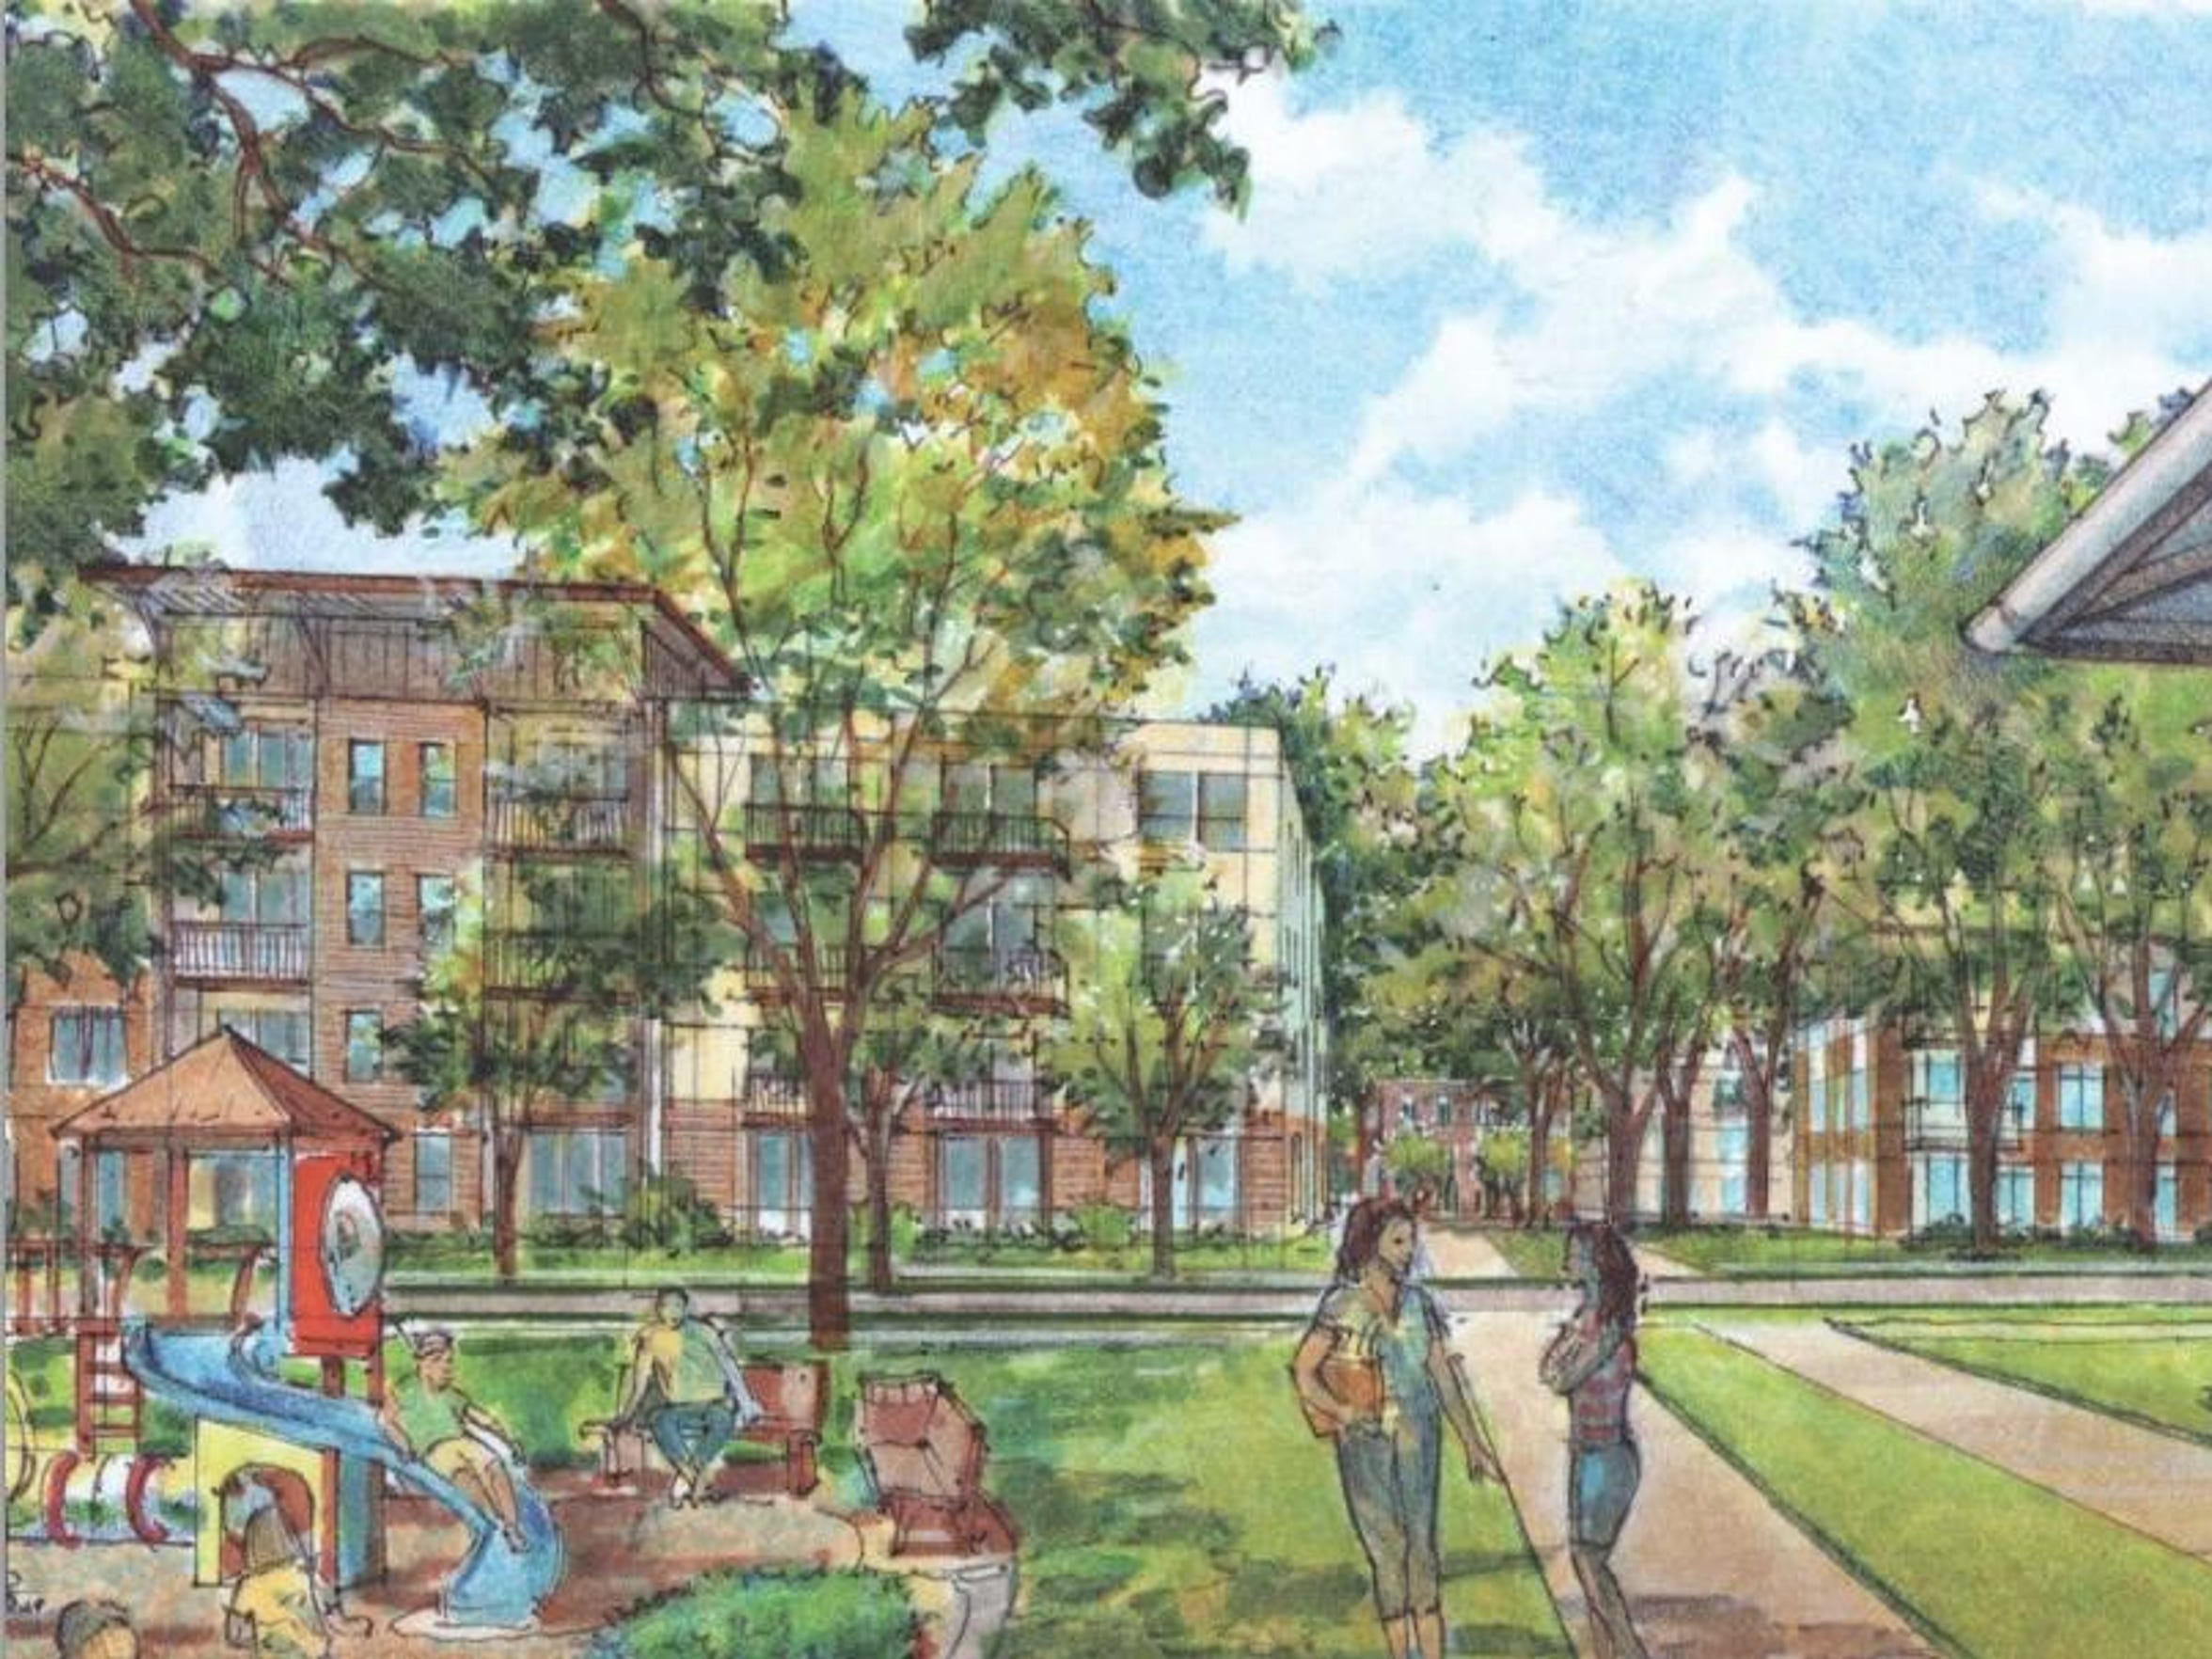 An artist's rendering shows the playground as part